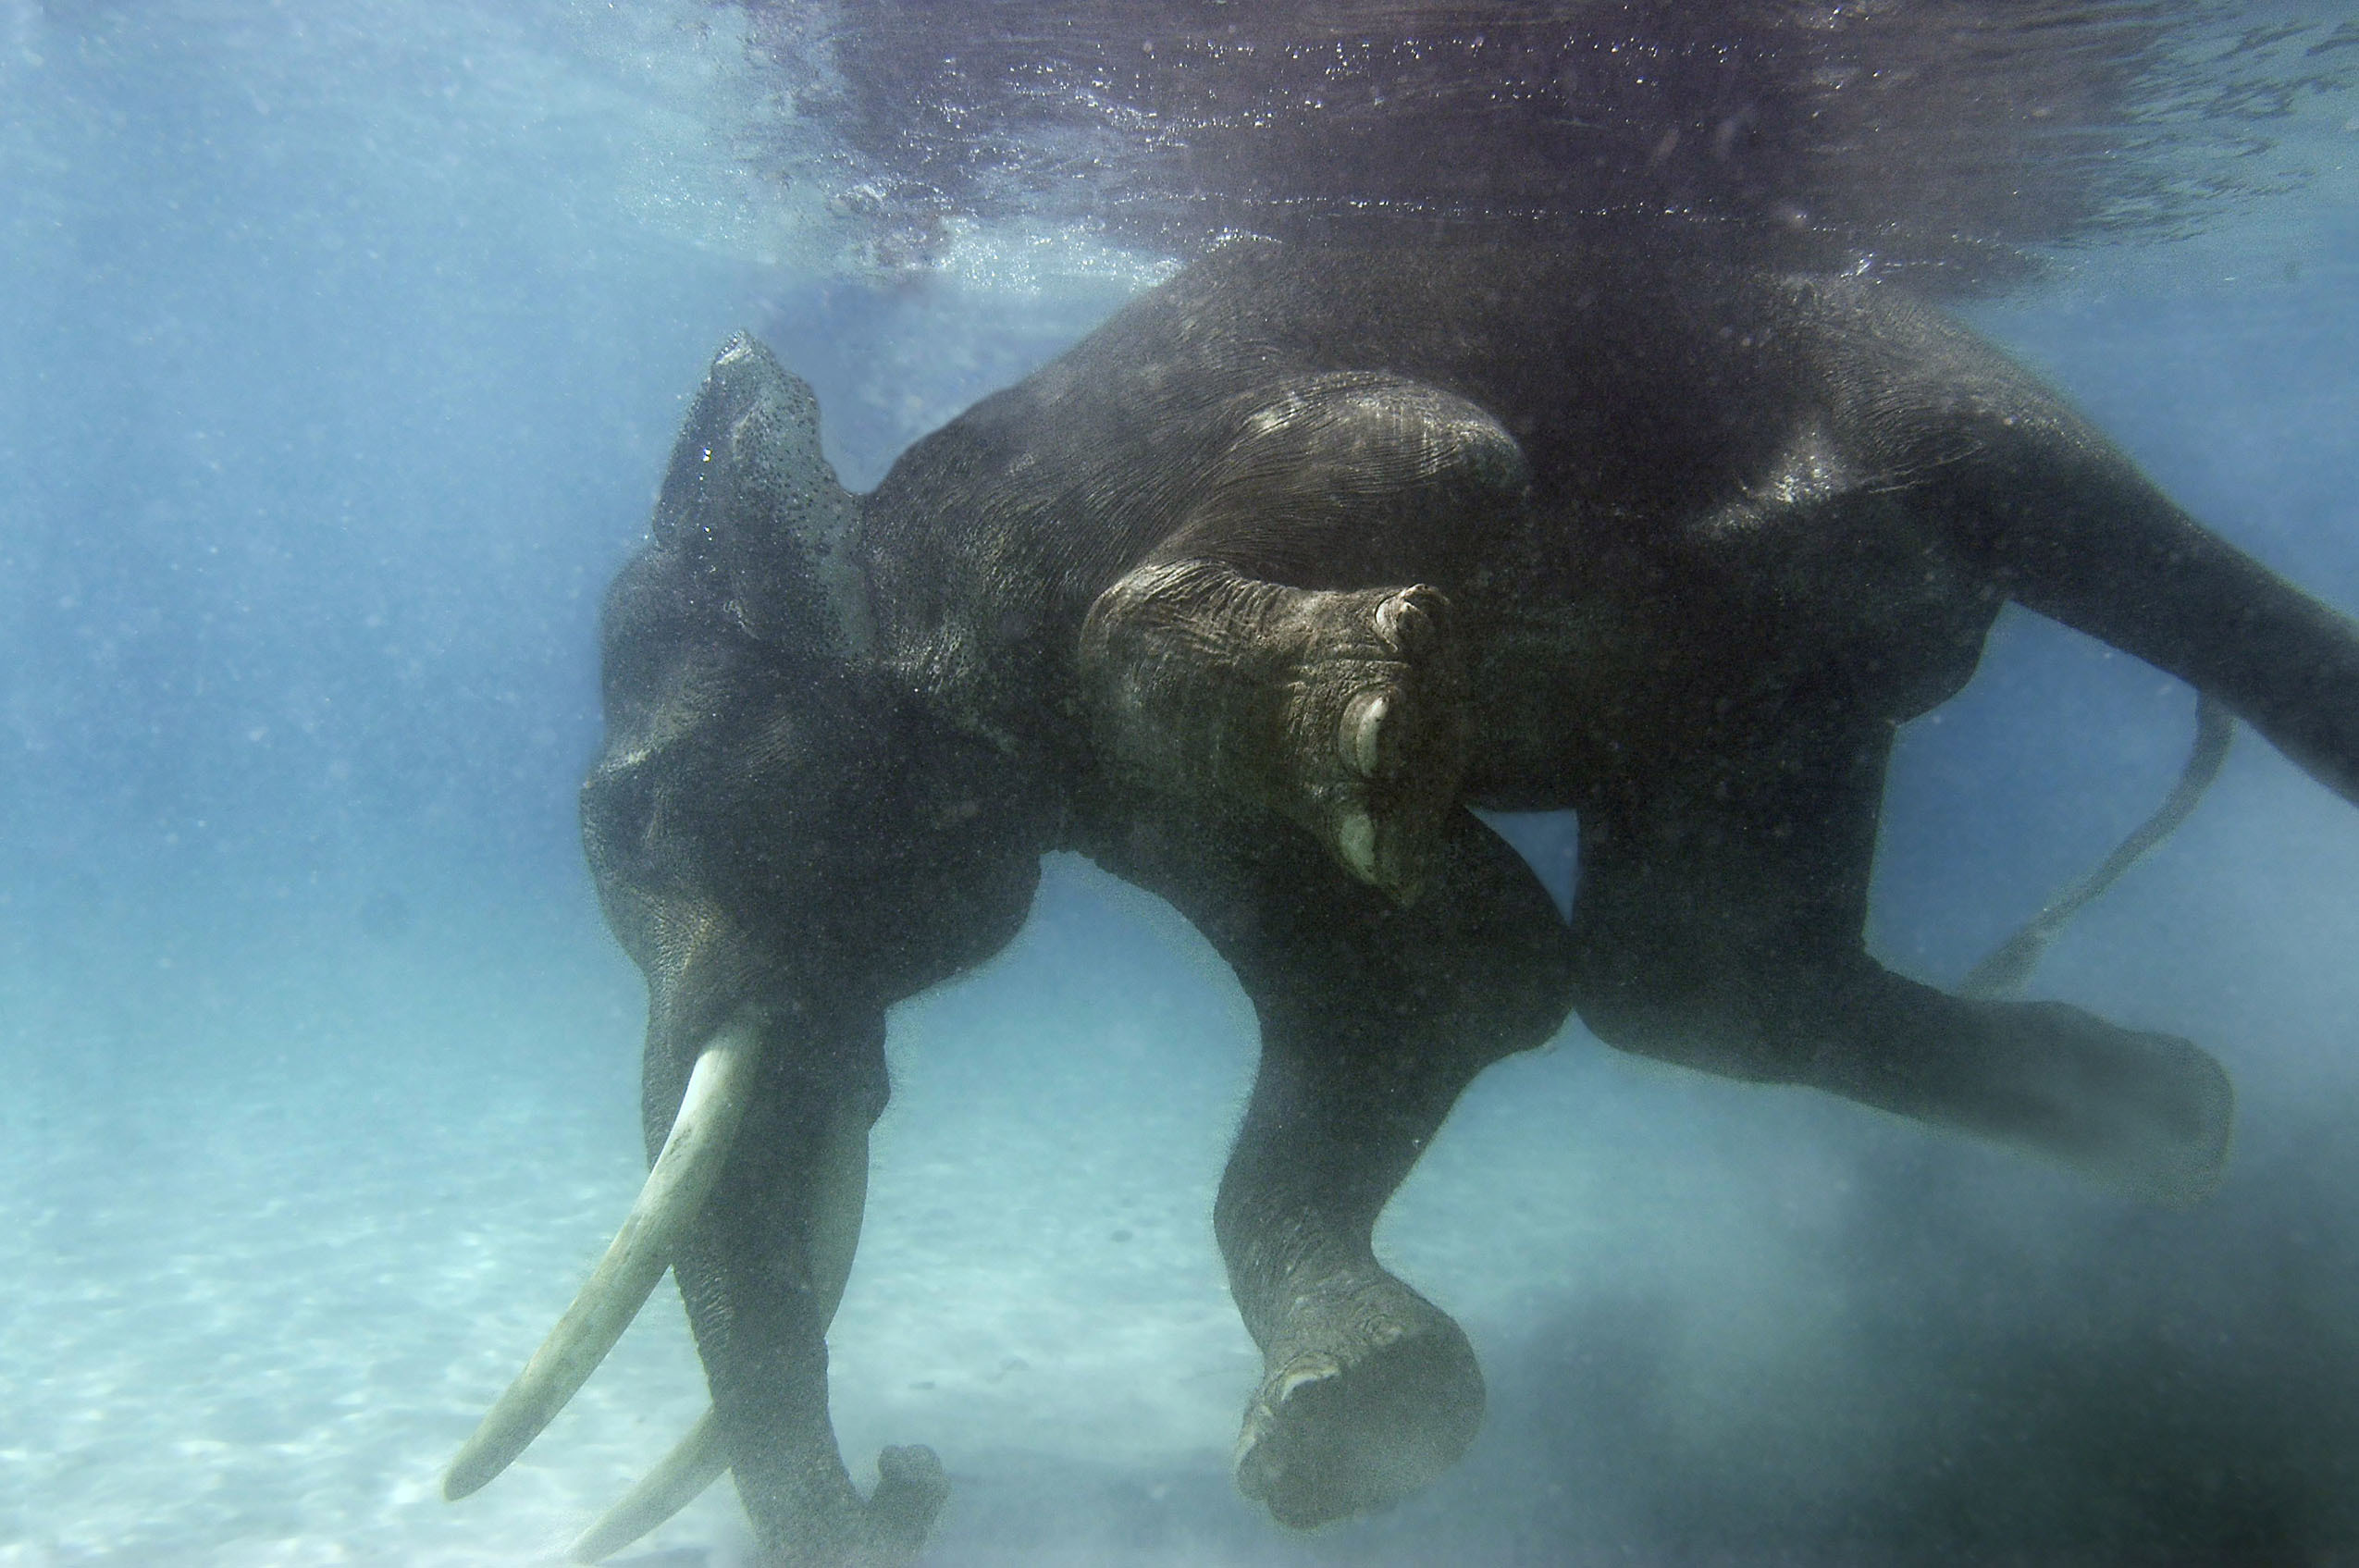 Animals swimming elephants underwater HD Wallpaper